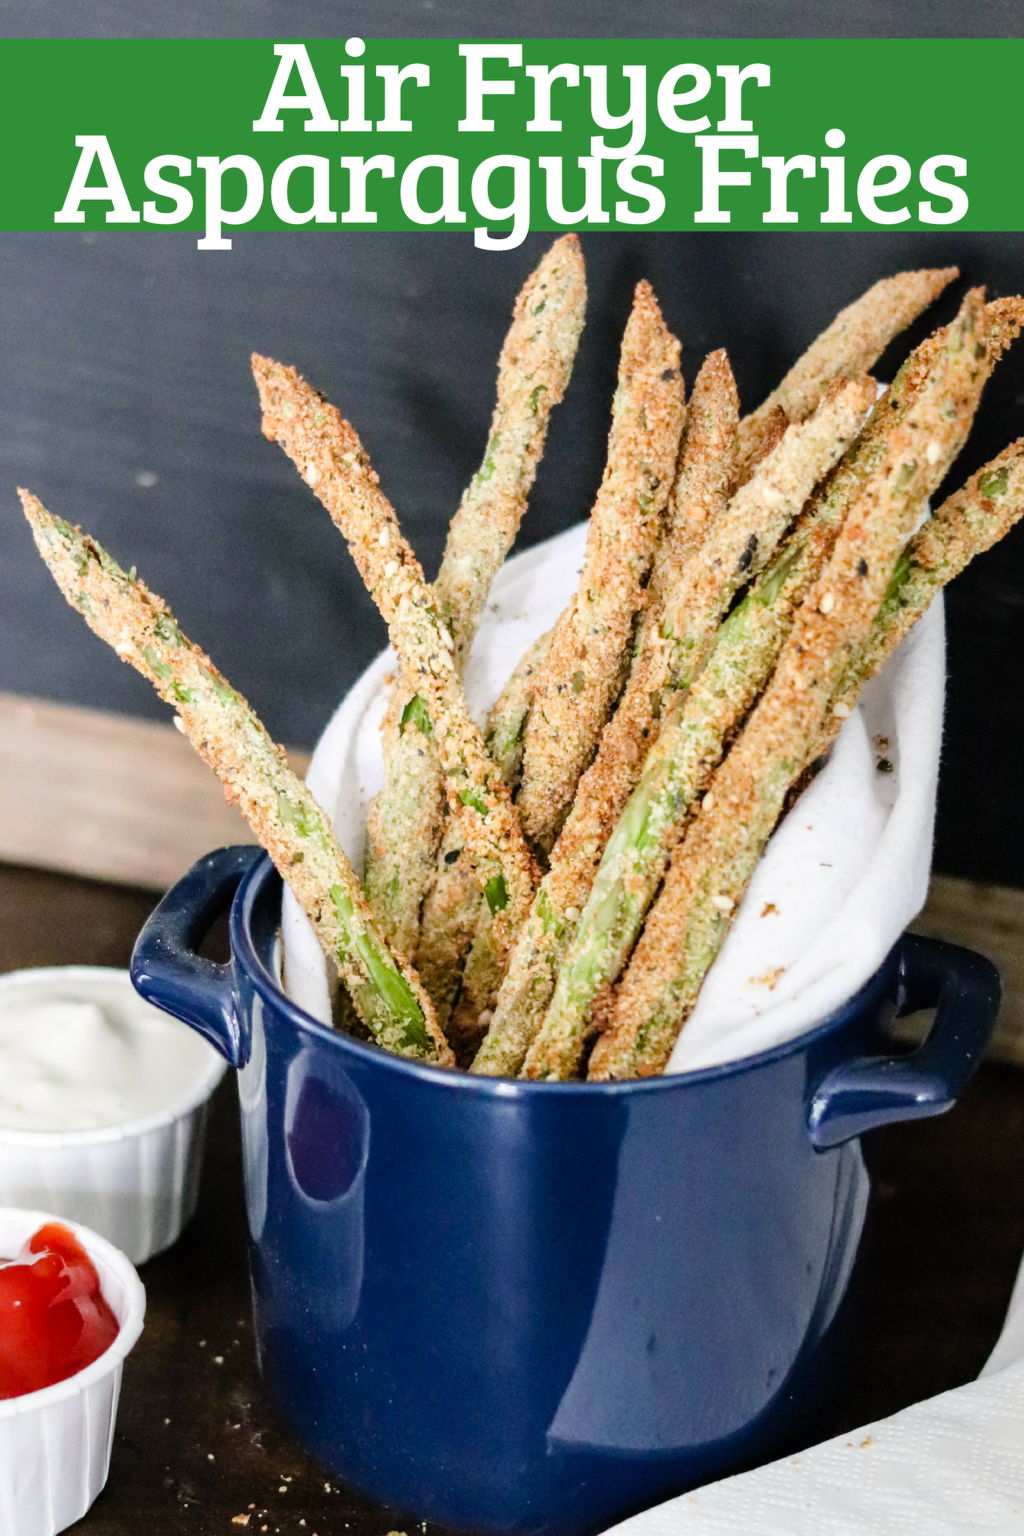 Air Fryer Asparagus fries up close